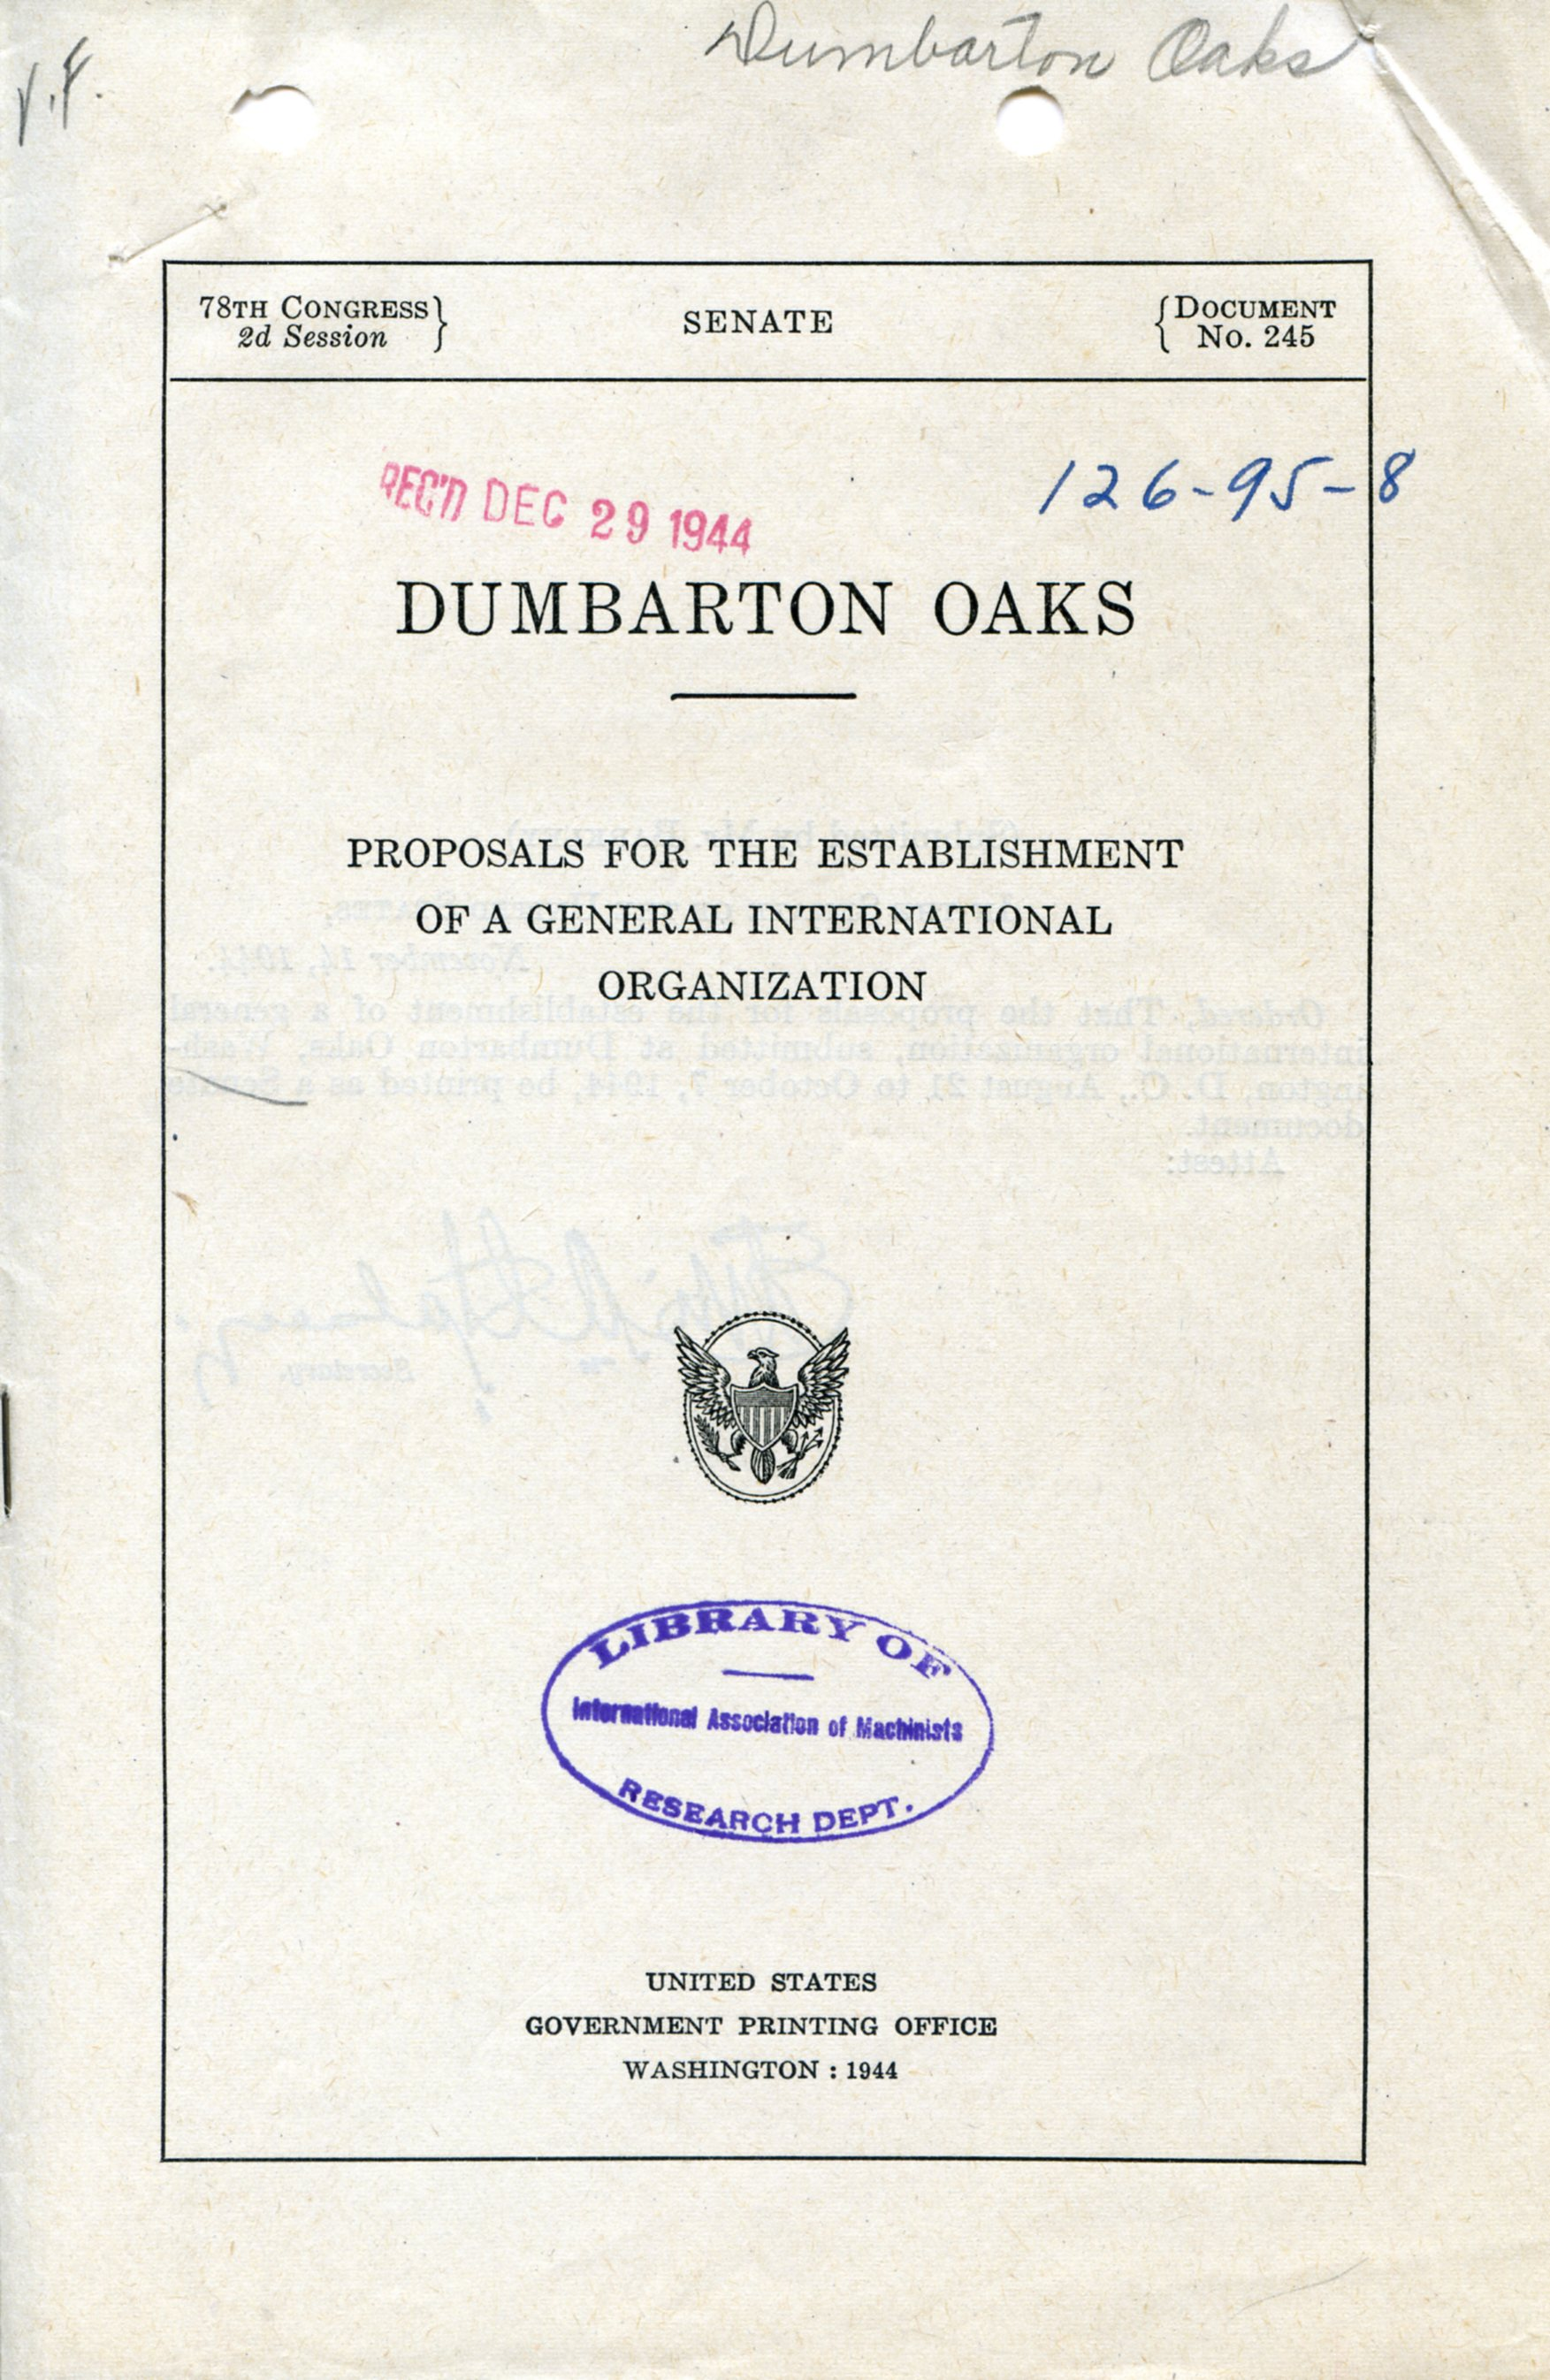 Dumbarton Oaks, Proposals for the Establishment of a General International Organization